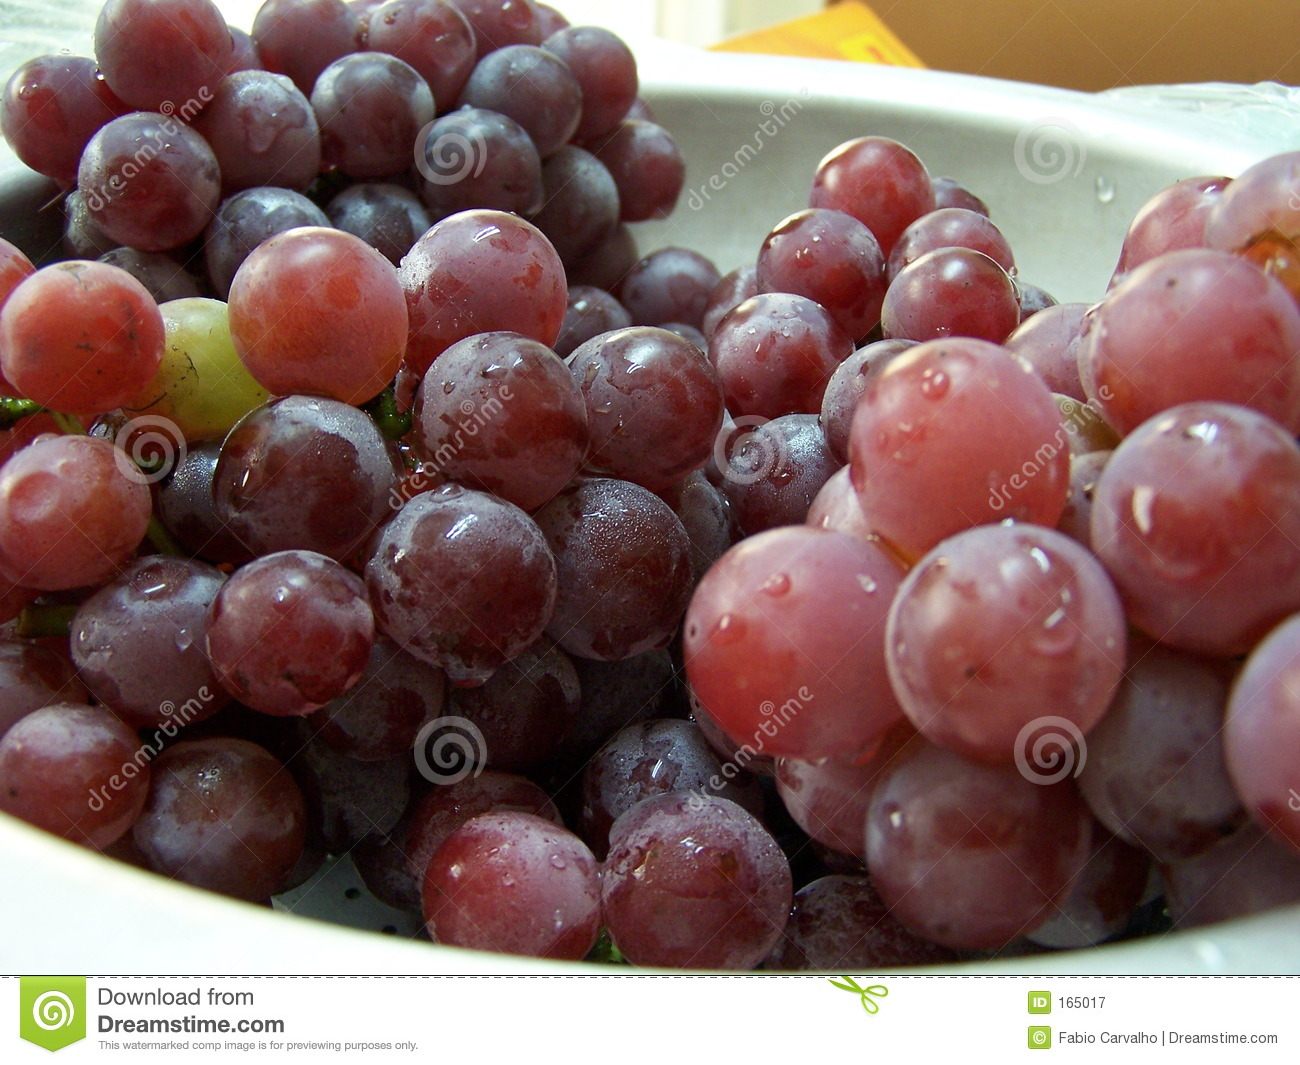 Grapes in a bowl